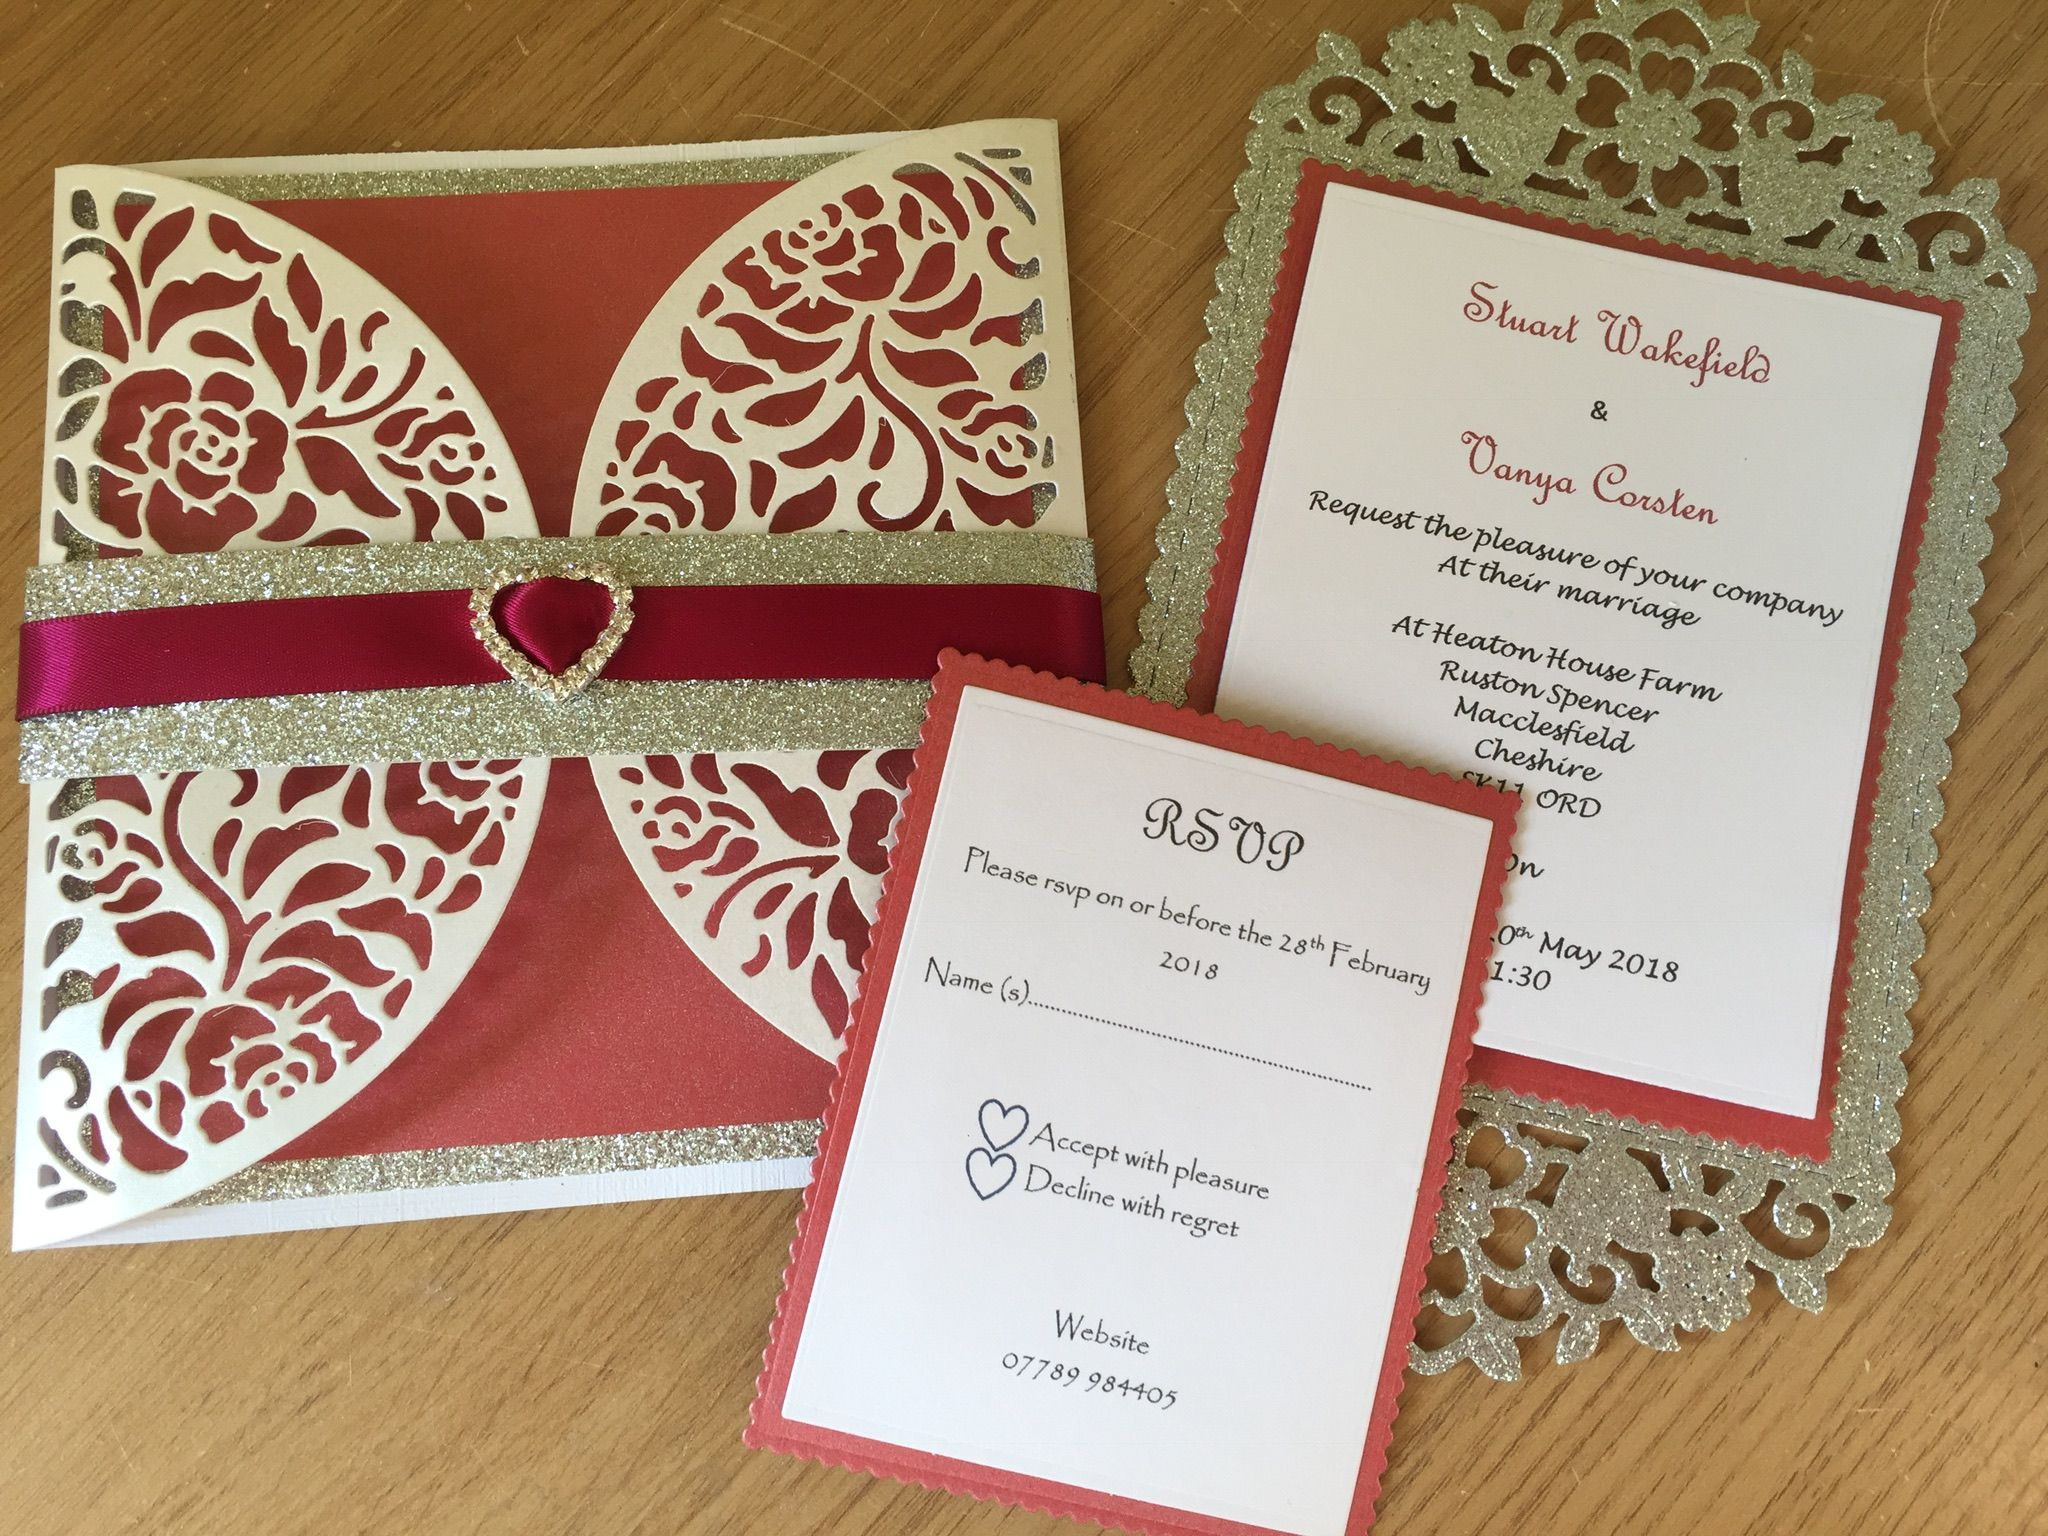 Pin by Lucy Rogan on Homemade wedding invitations | Pinterest ...